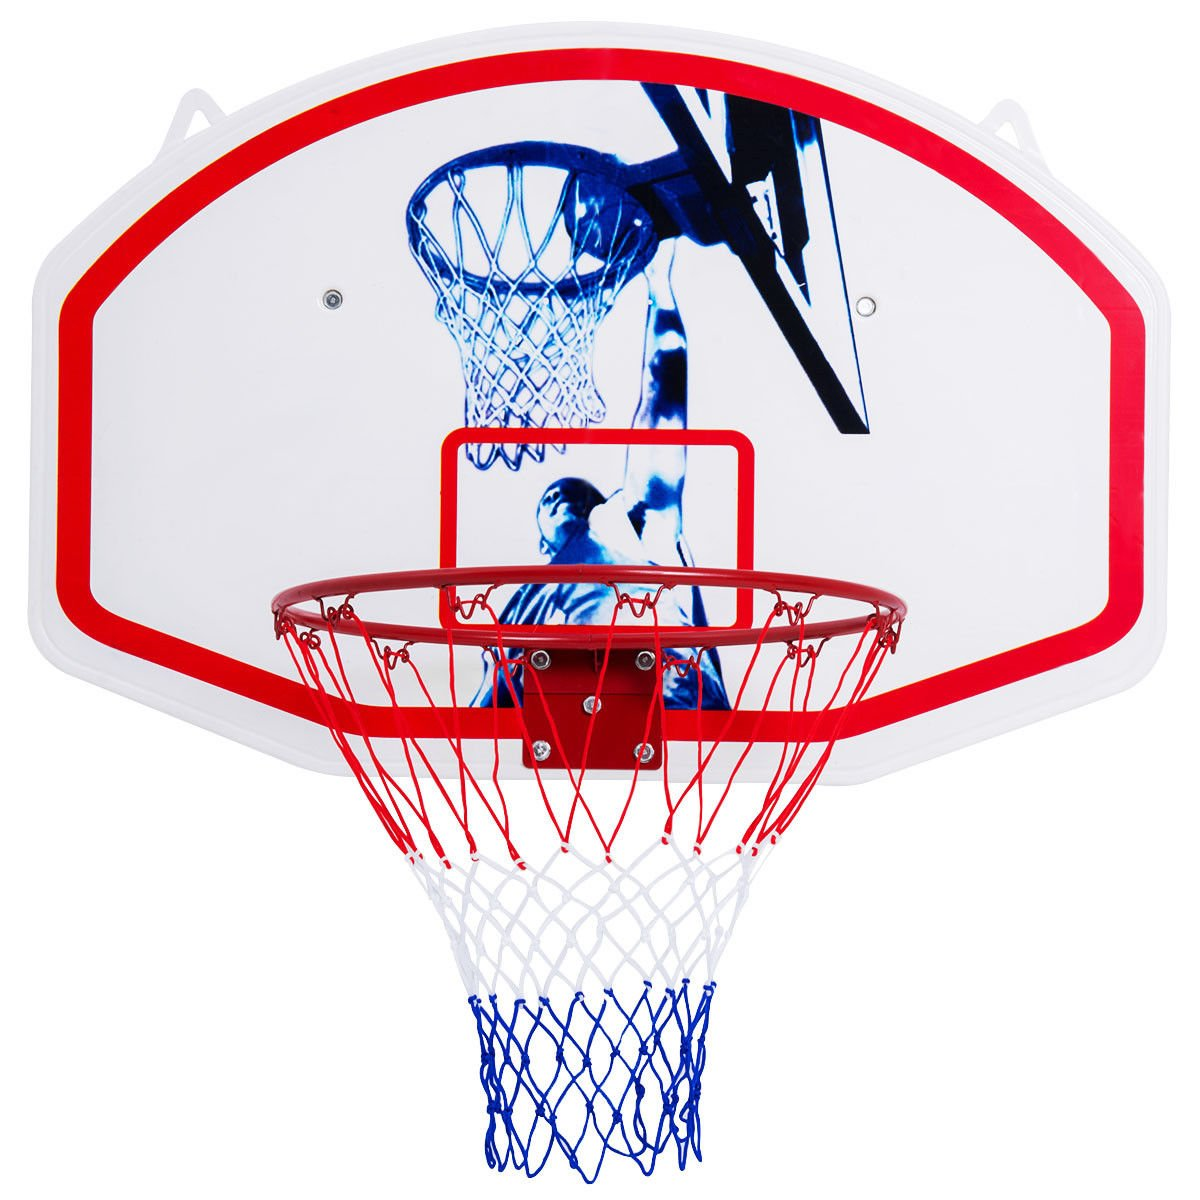 TNPSHOP 35'' x 24'' Wall Mounted Mini Basketball Hoop Backboard & Rim Combo Indoor Sports